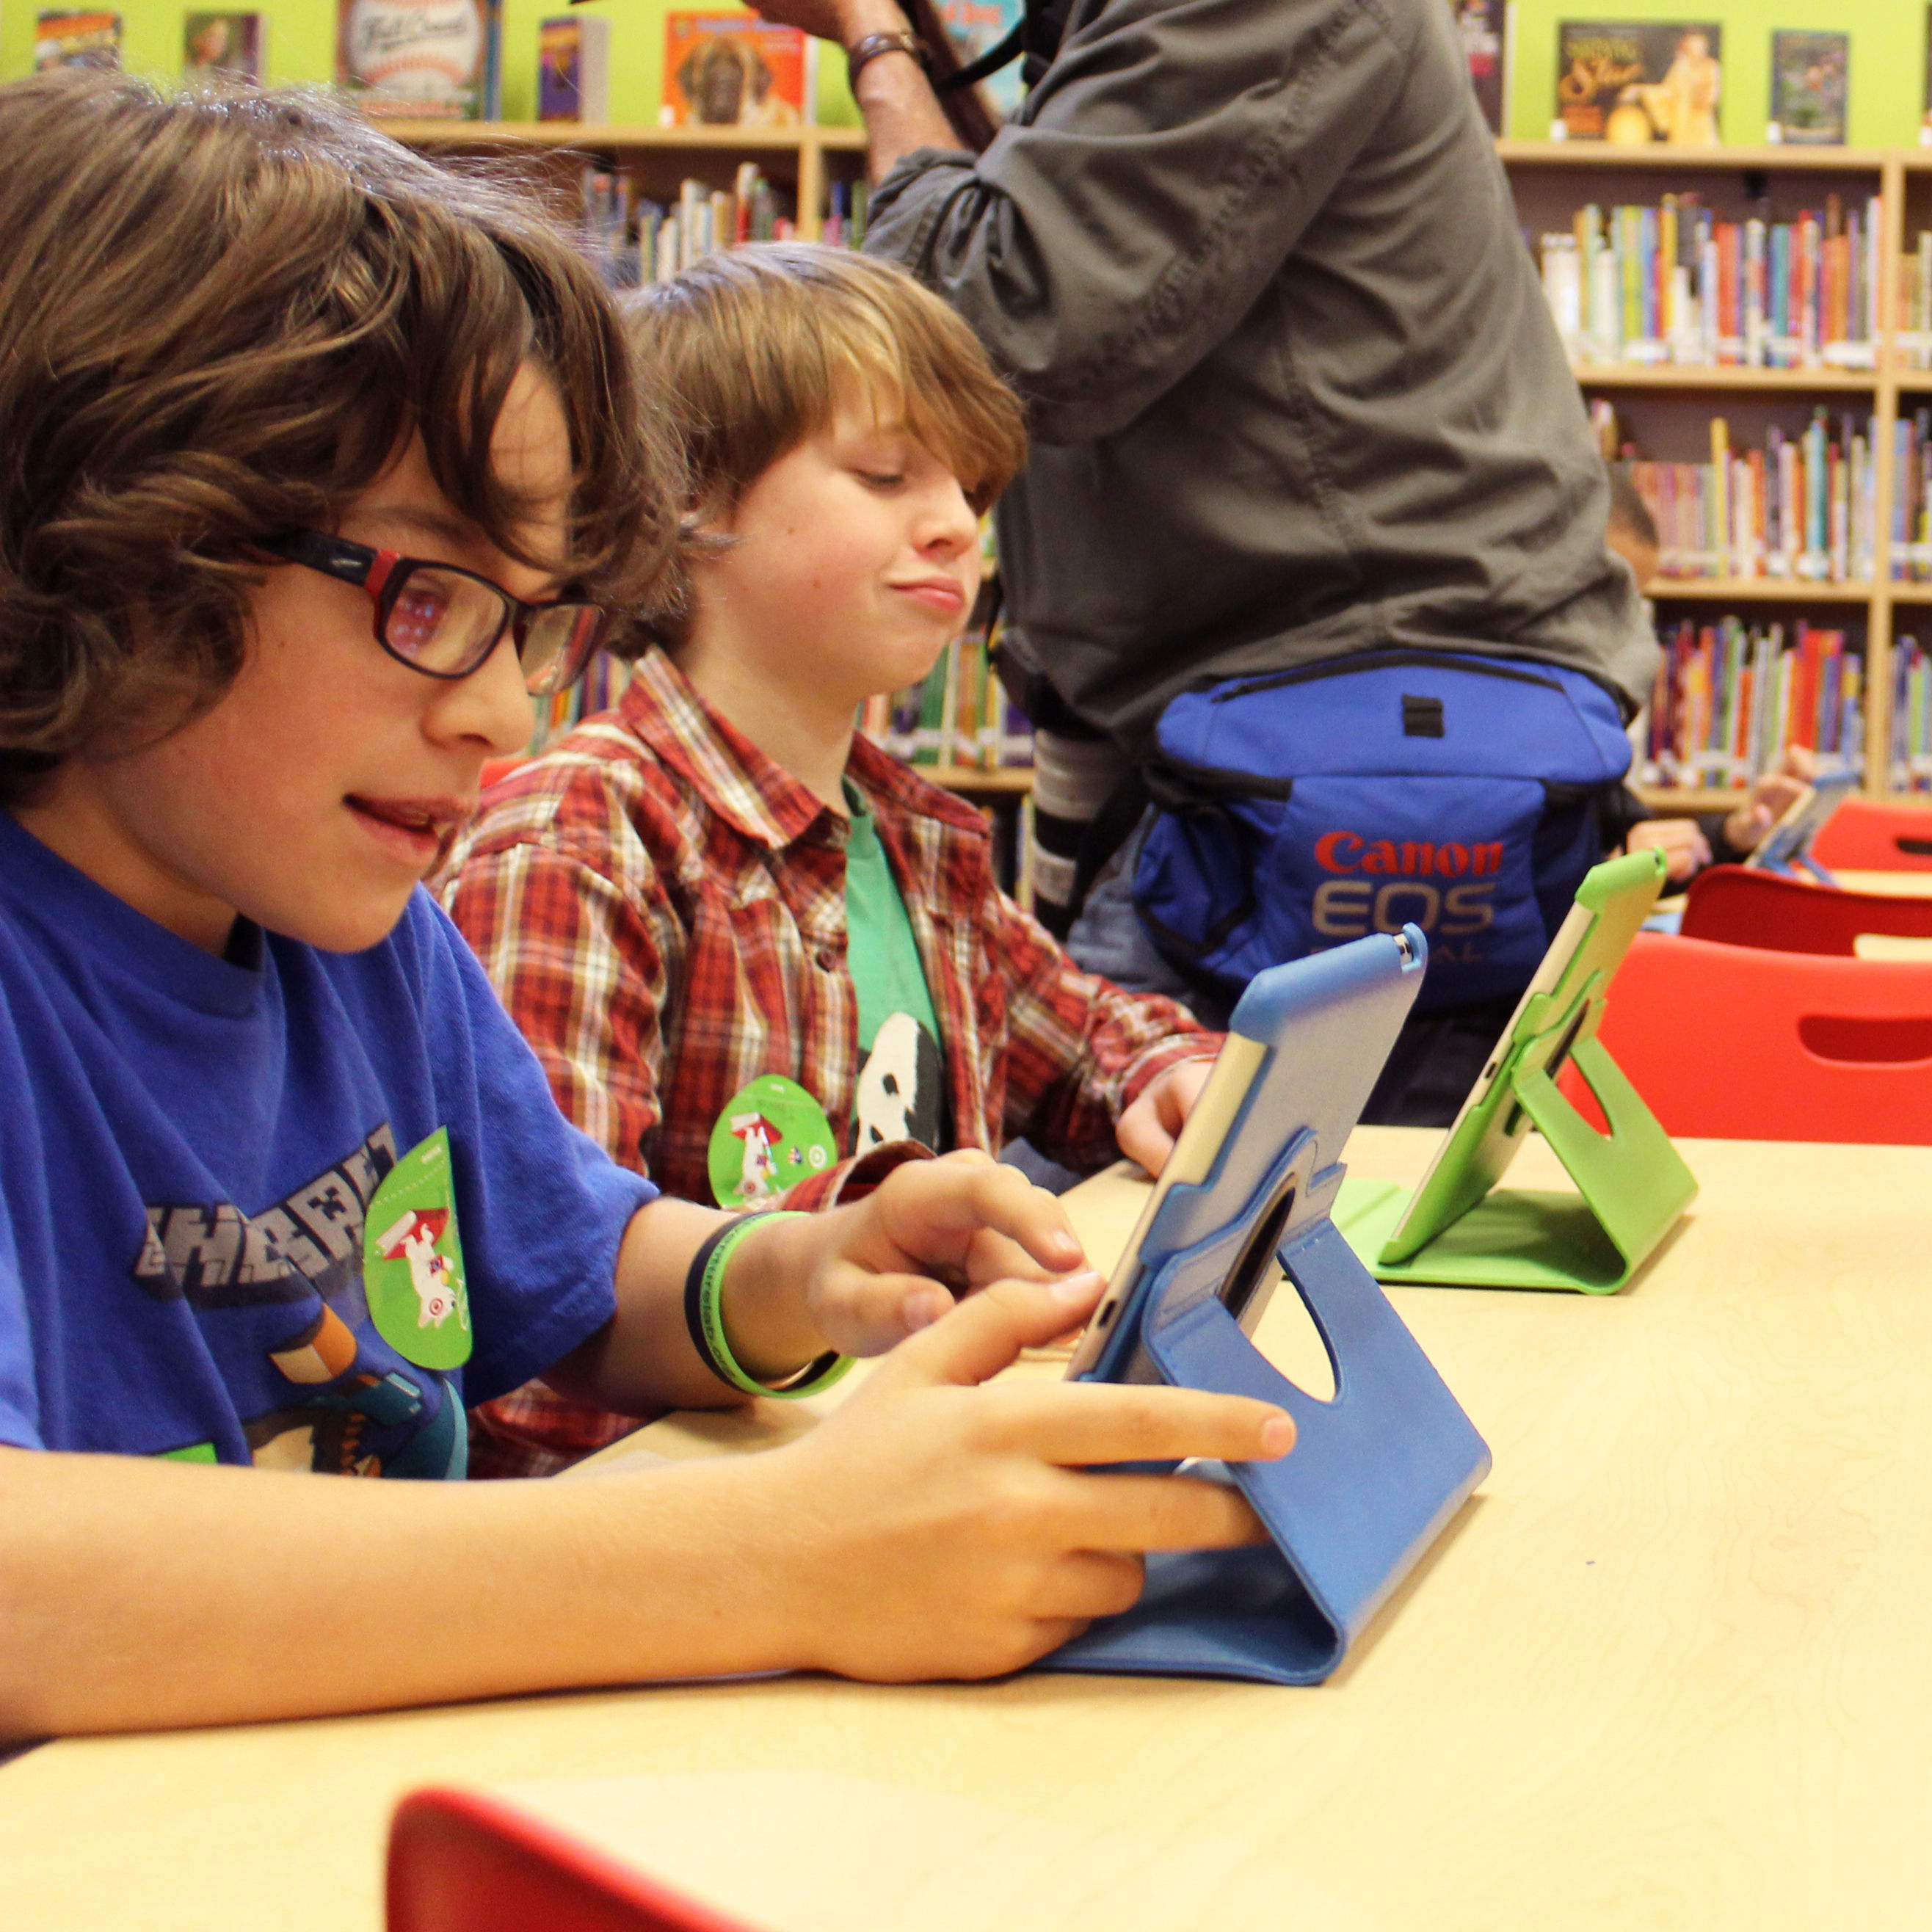 Hawthorne elementary school ribbon cutting new library school students ipads ltiadr